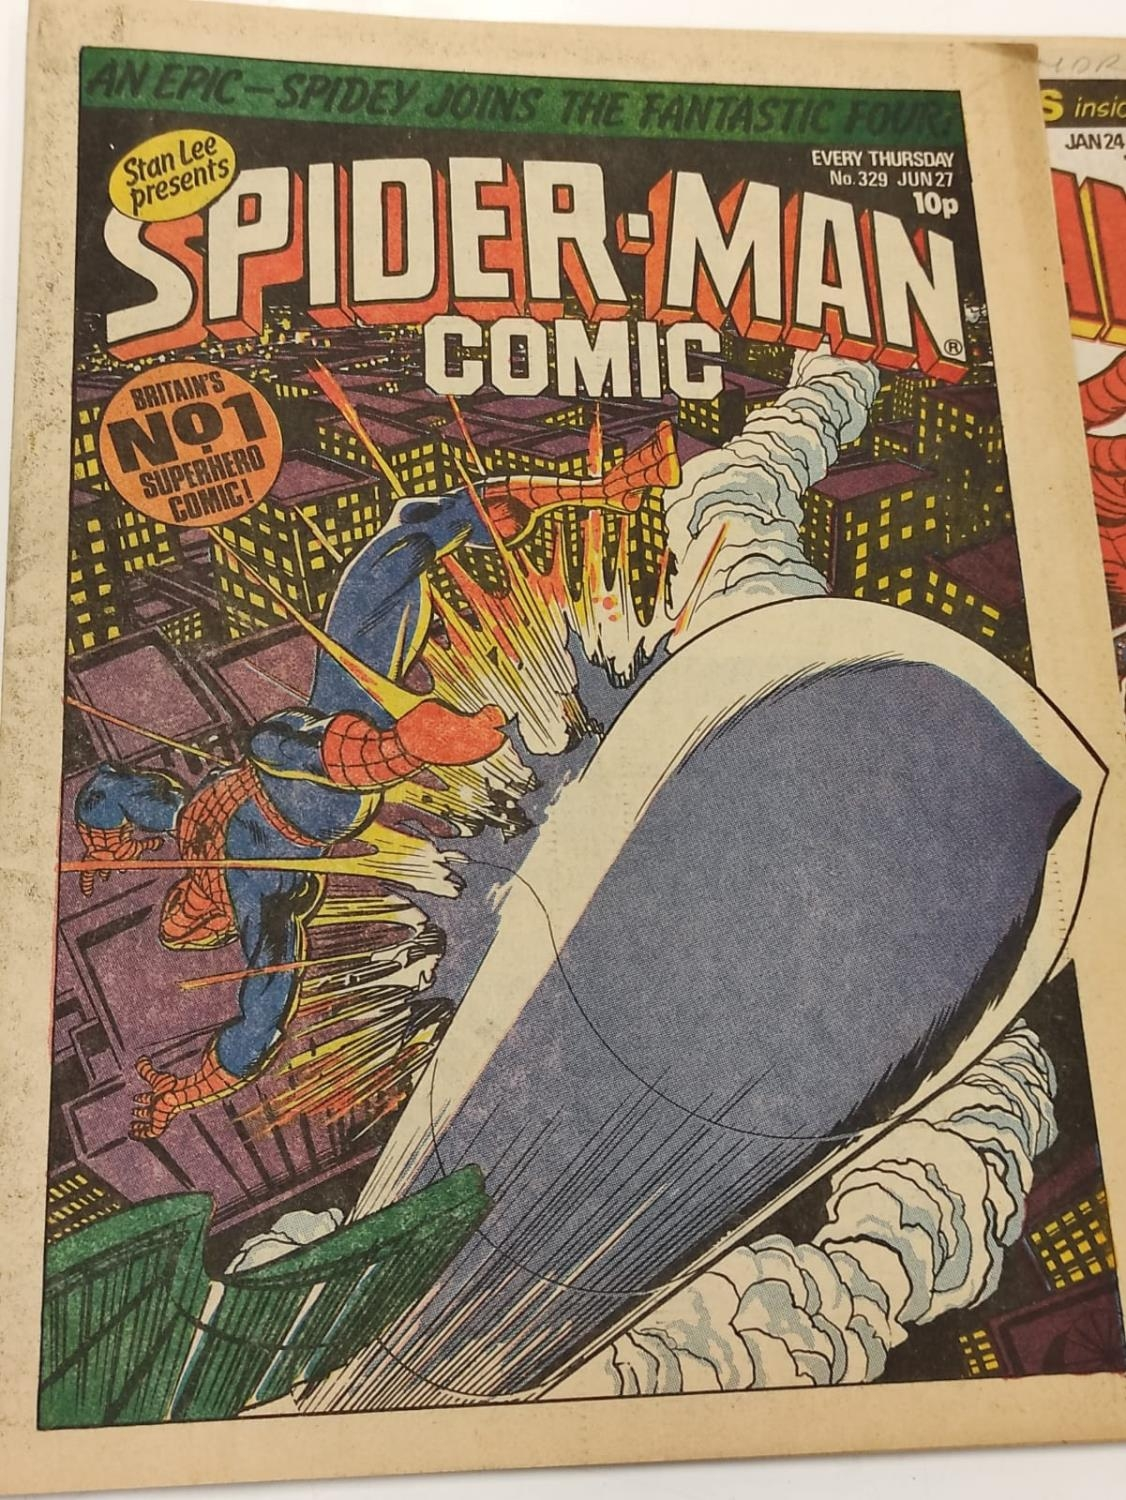 50 editions of Stan Lee Presents, a selection of 1979/1980's comics. - Image 43 of 71